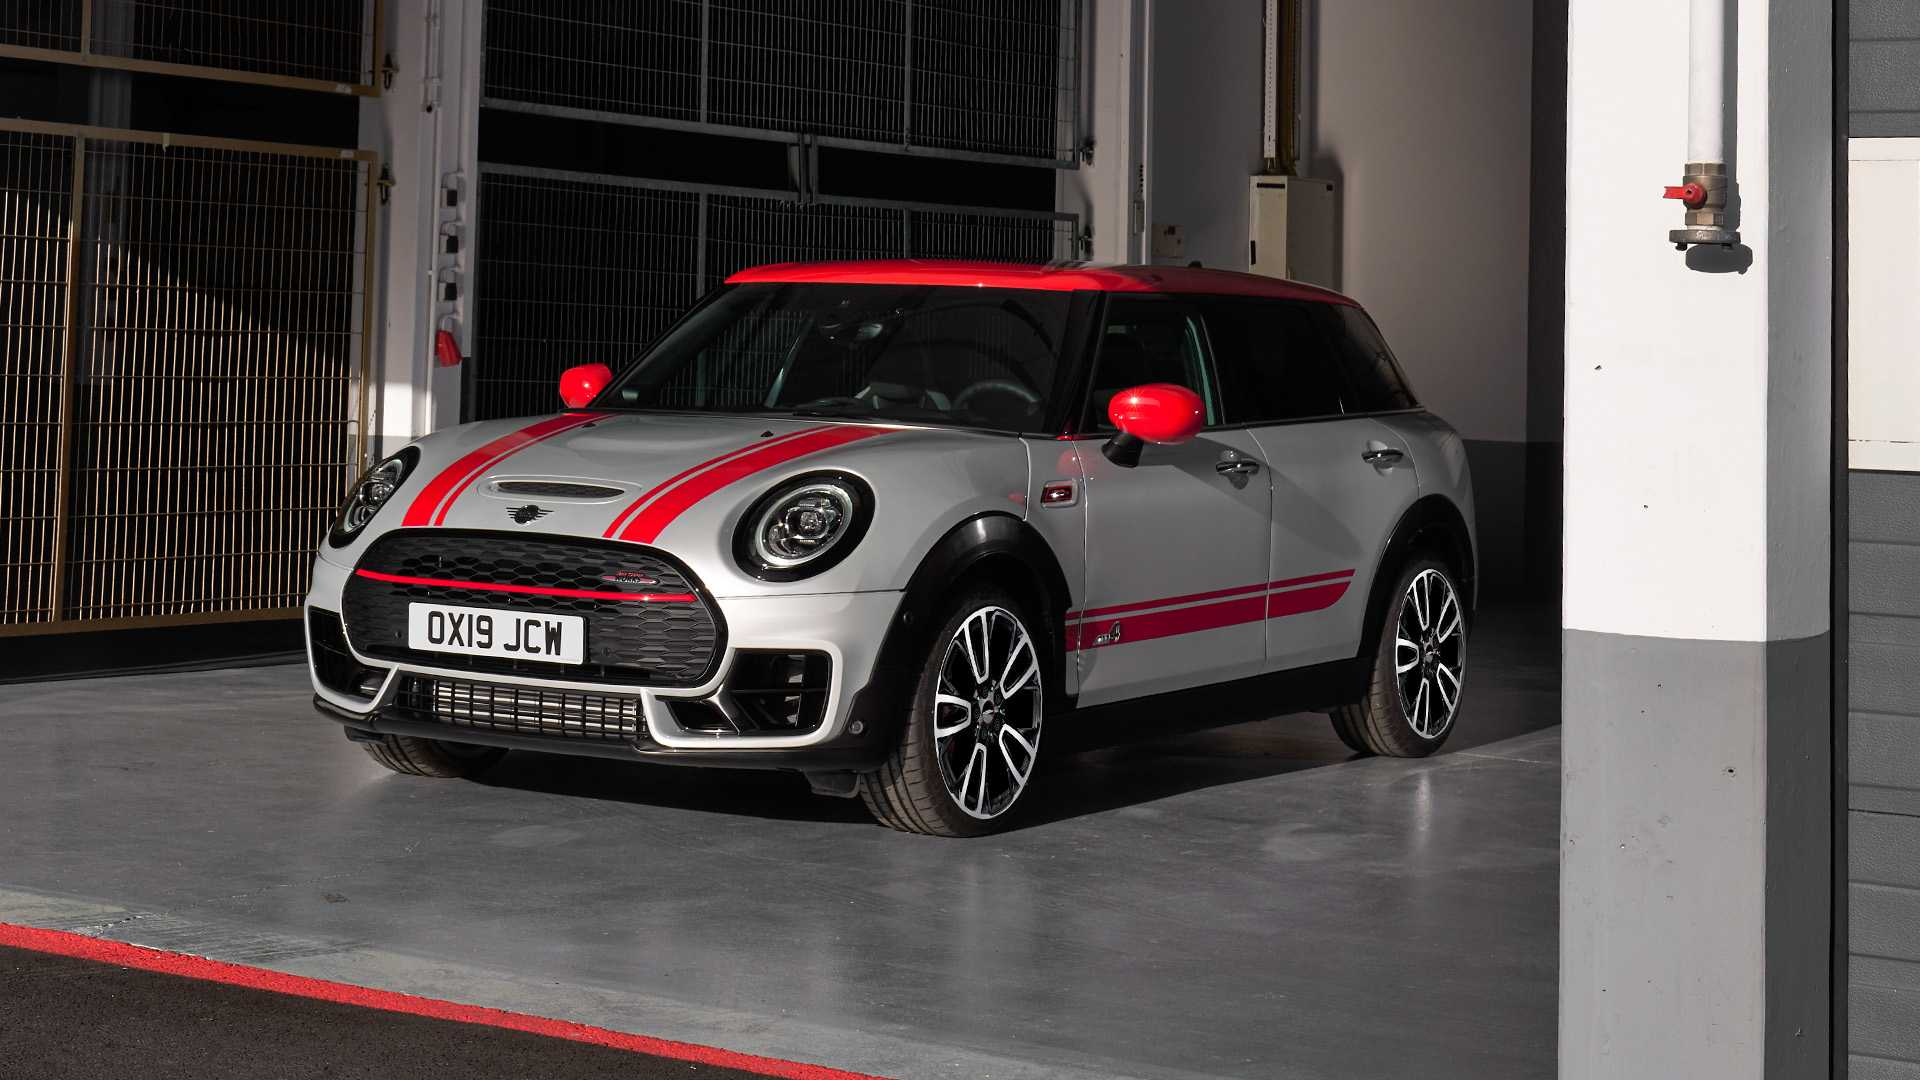 55 New 2019 Mini John Cooper Works Price And Release Date